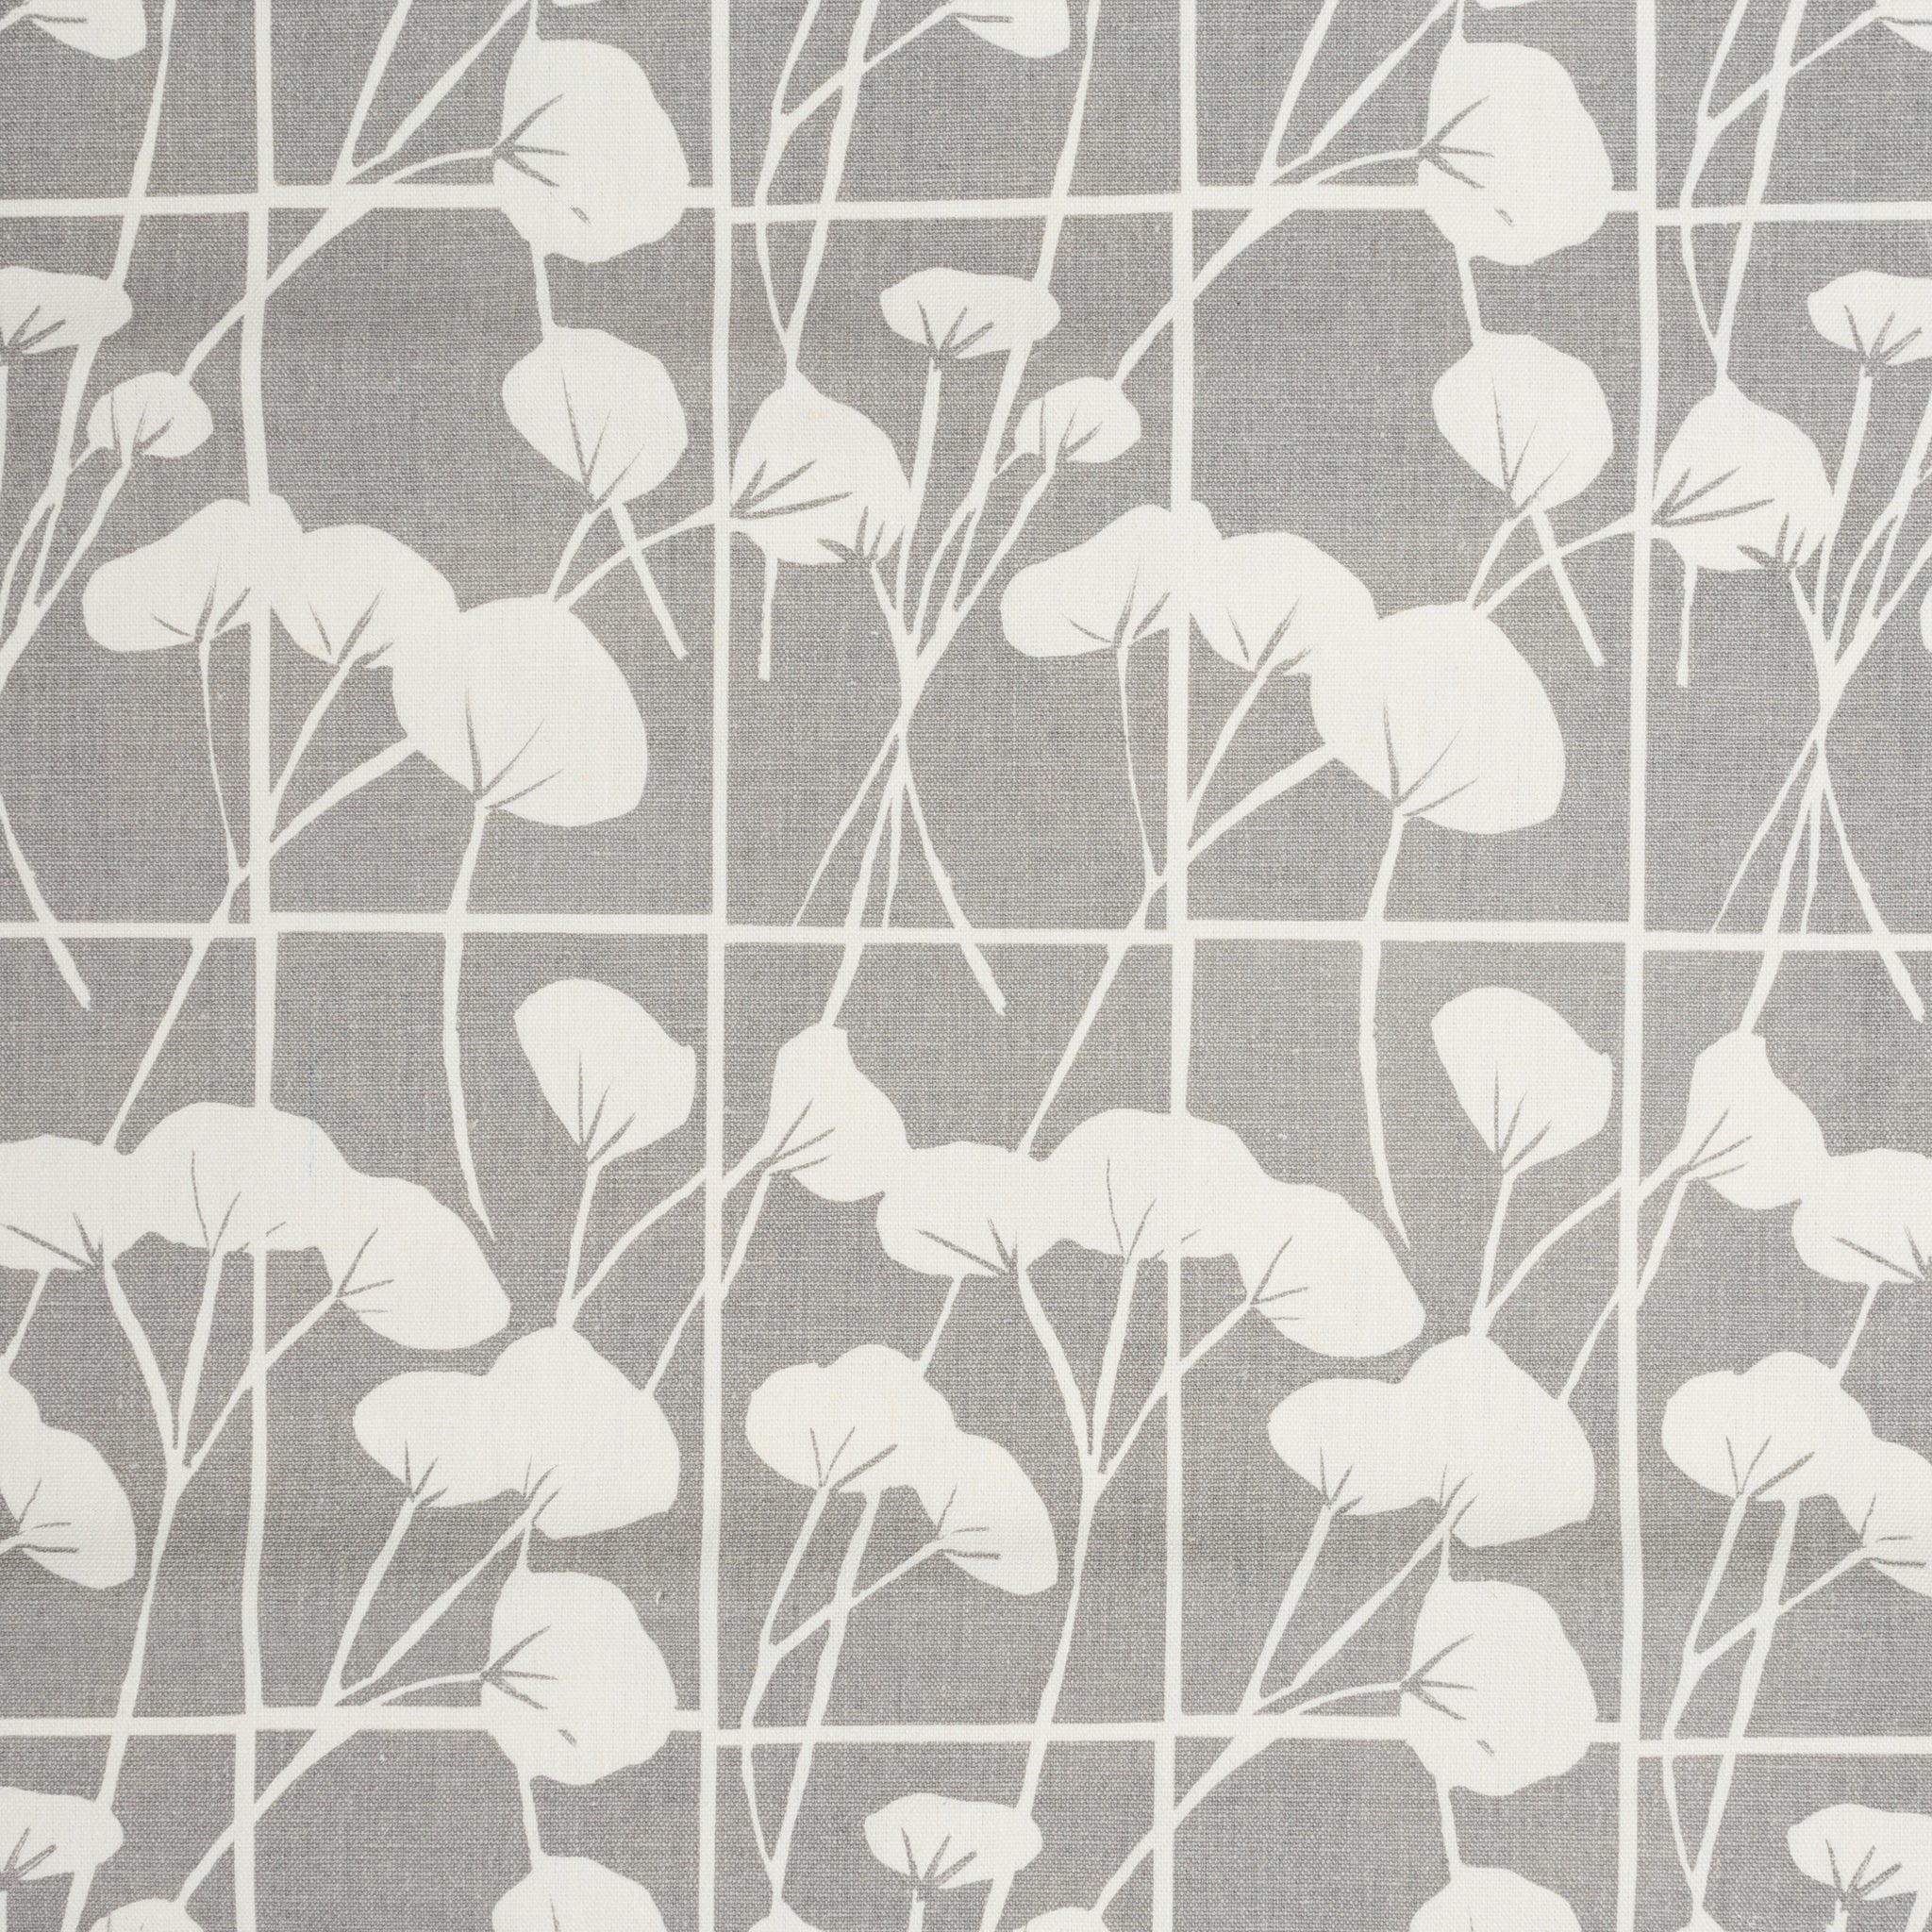 Screen printed yardage of Cotton in Pebble on mid weight base cloth